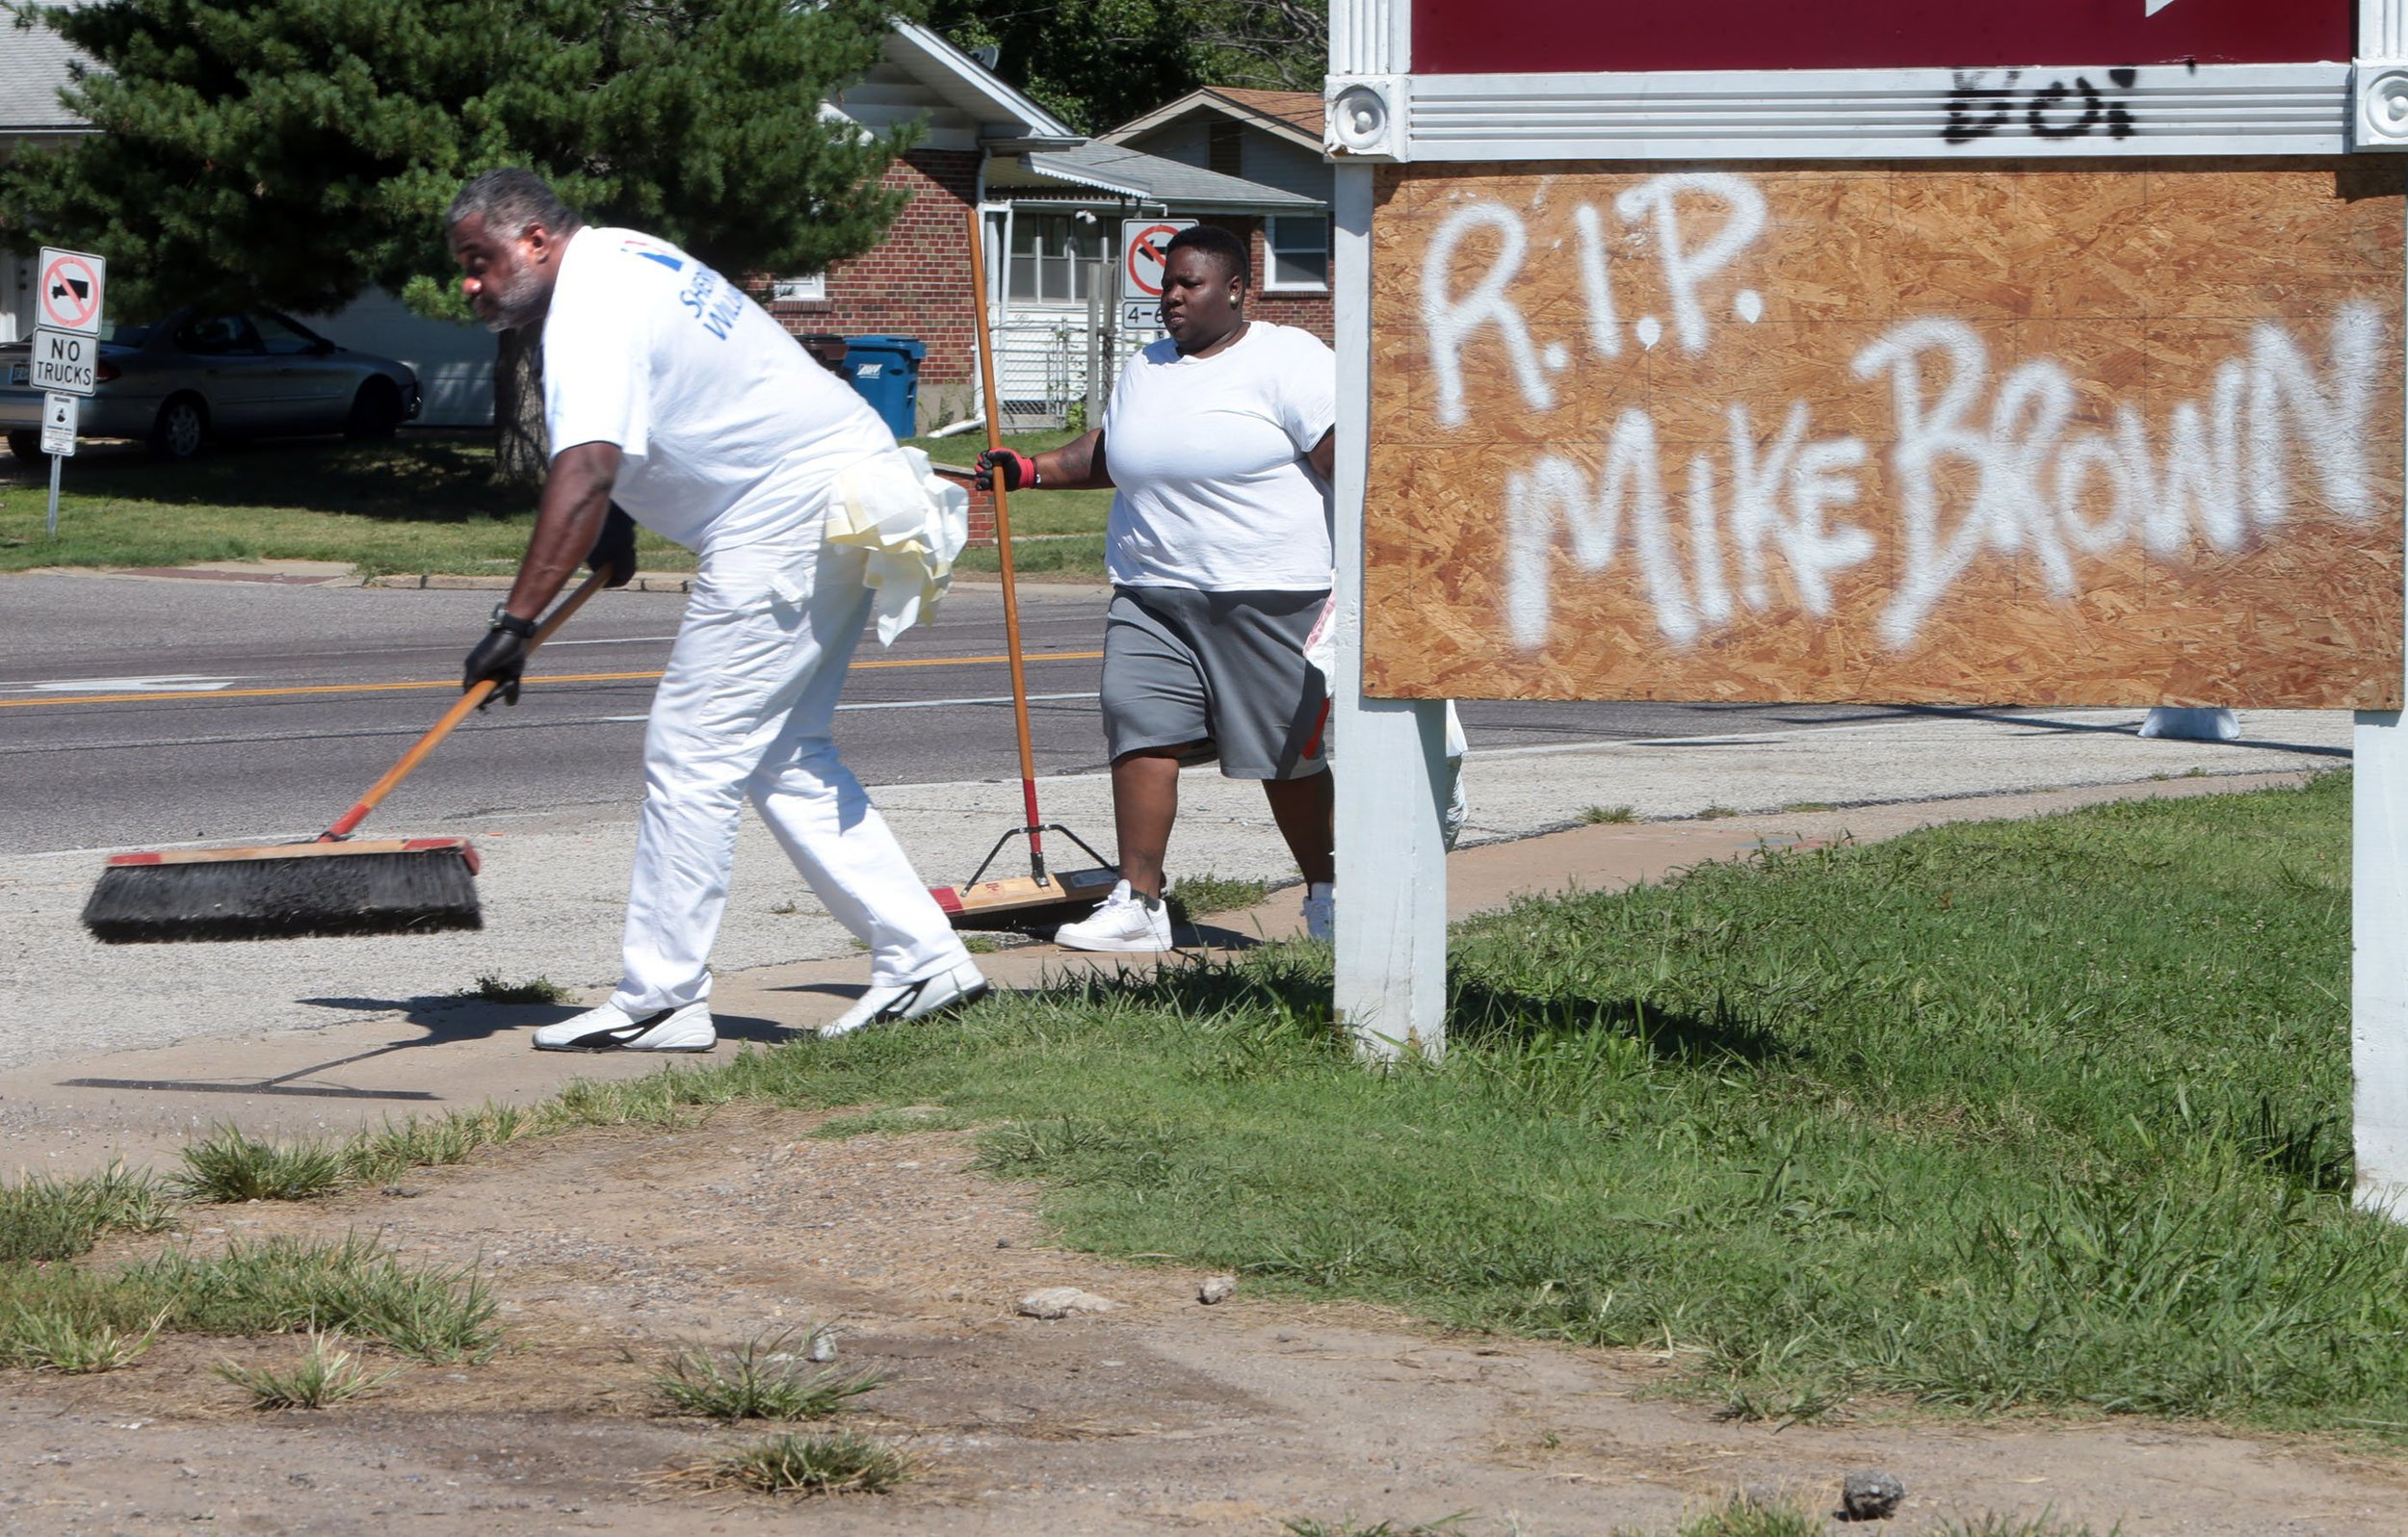 """""""I wanted to come out and help bring this community back together. And with being older, I wanted to set an example and inspire leadership to the youth,"""" said Anthony Clark of Arnold (far left) who helps clean up trash on Wednesday, Aug. 13, 2014, on W. Florissant Ave. in Ferguson. More than 100 volunteers came together to send a positive message to the community by cleaning up the businesses and areas that were damaged by looting and riots on Sunday night. Behind Clark is volunteer Keeosha Conely of Ferguson.  Photo by Laurie Skrivan, lskrivan@post-dispatch.com"""